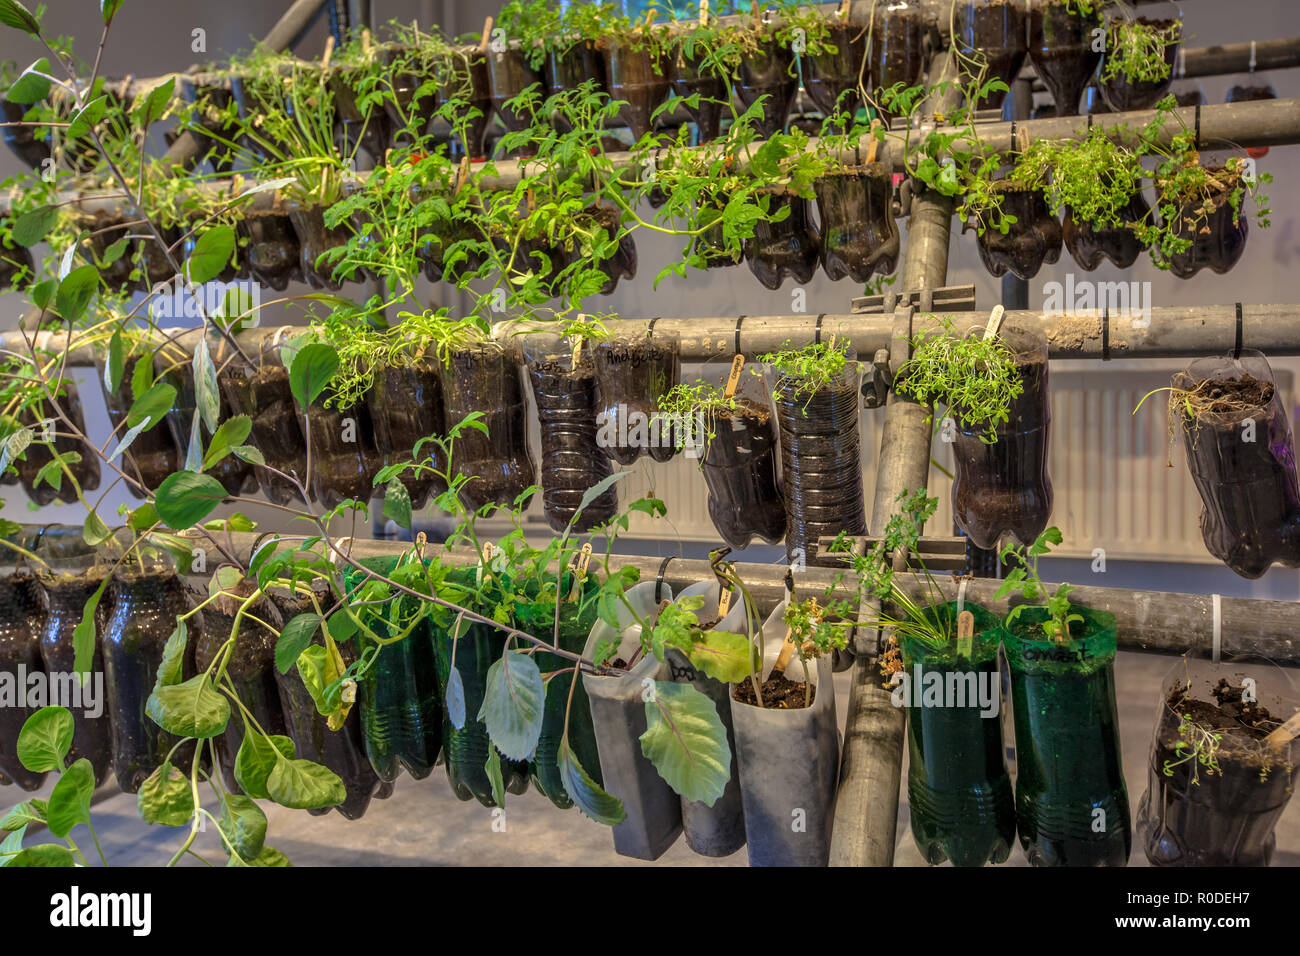 Hanging baskets vegetable garden made of plastic bottles inside a home - Stock Image